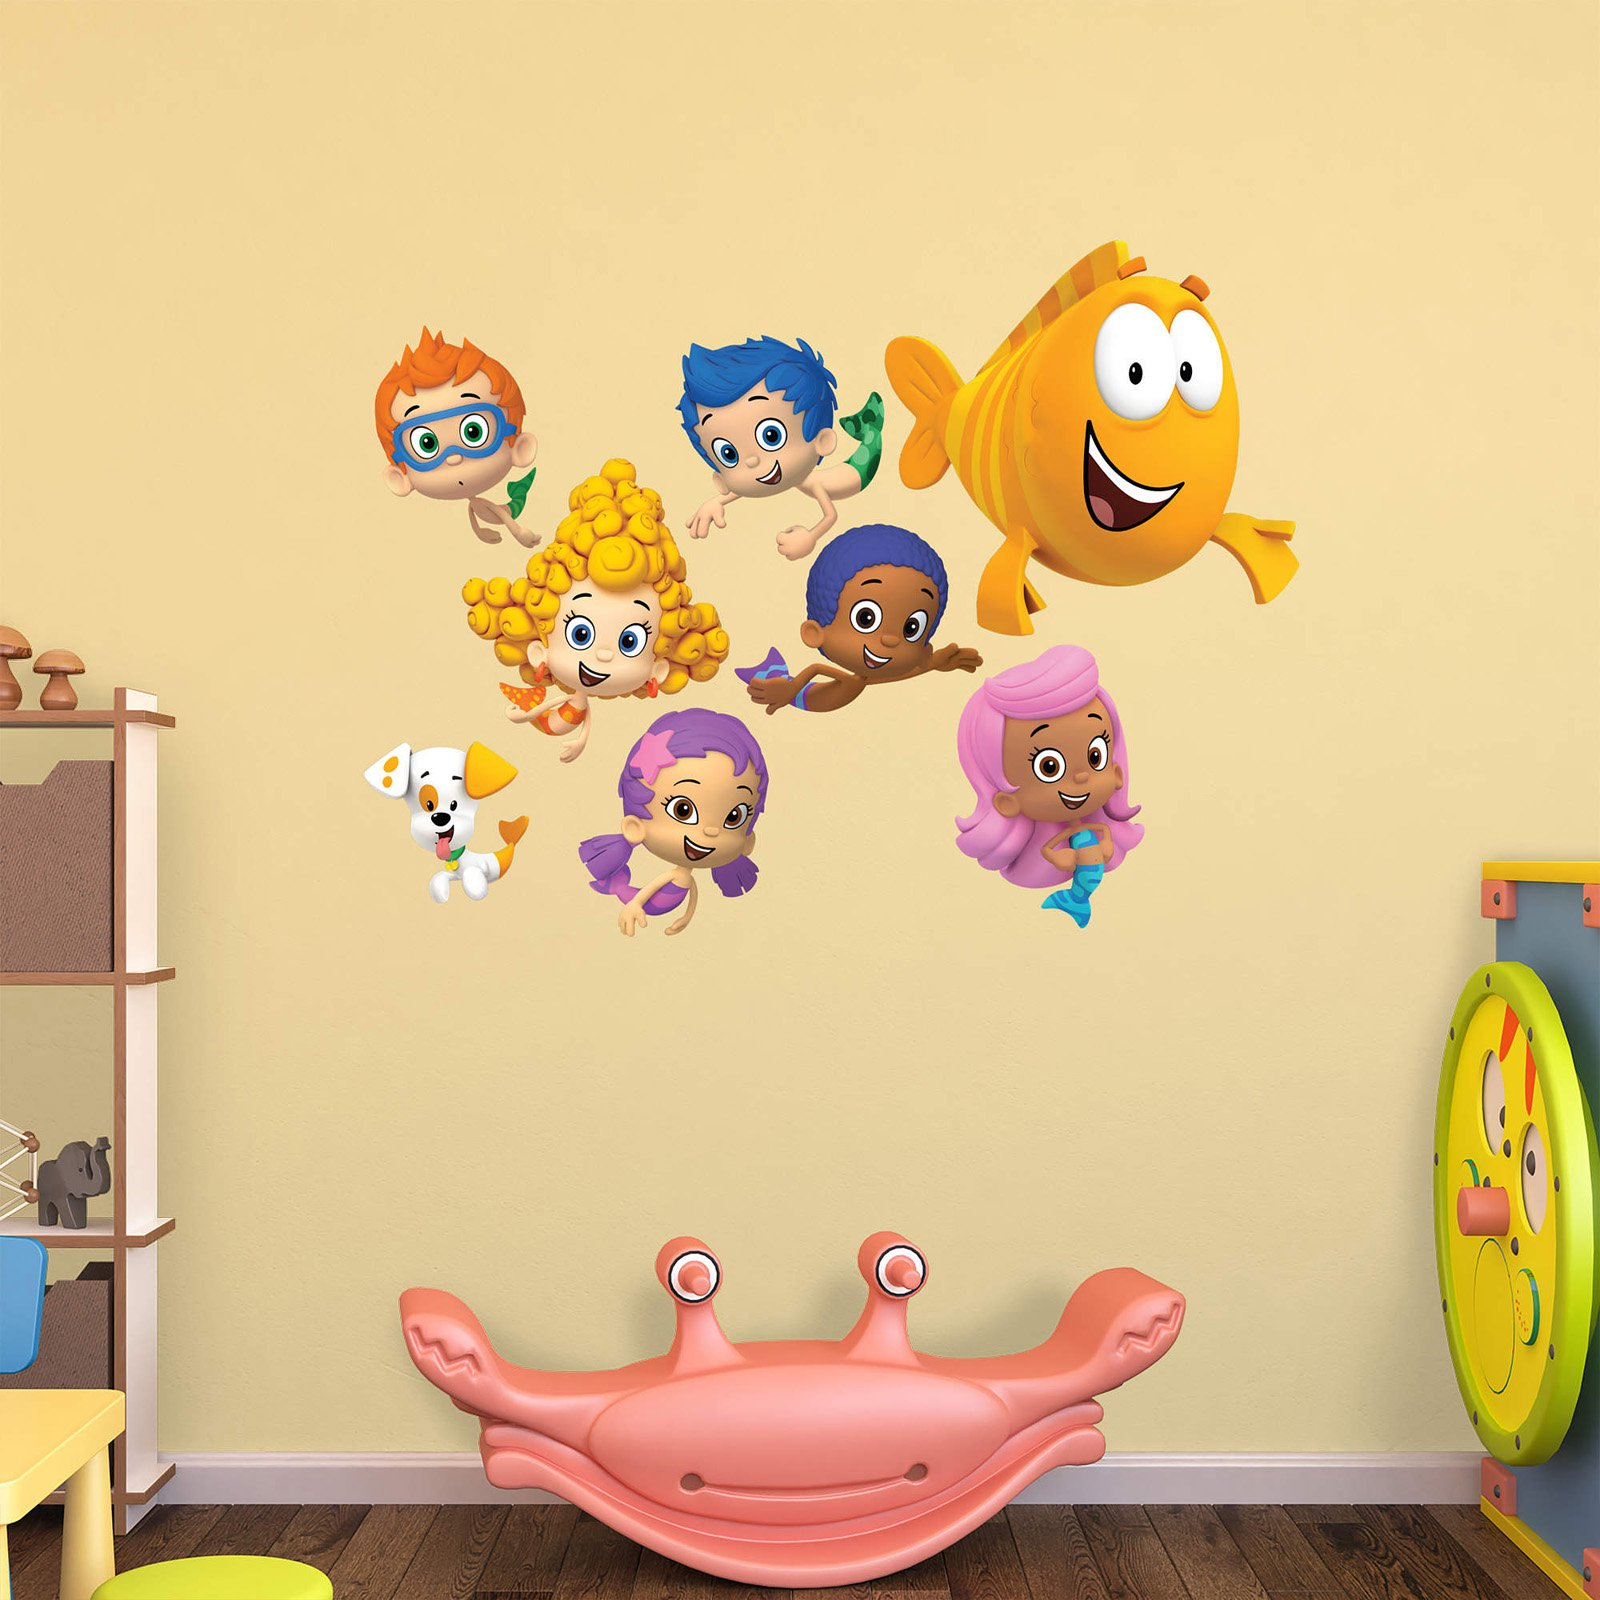 Fathead Nickelodeon Bubble Guppies Wall Decal Collection